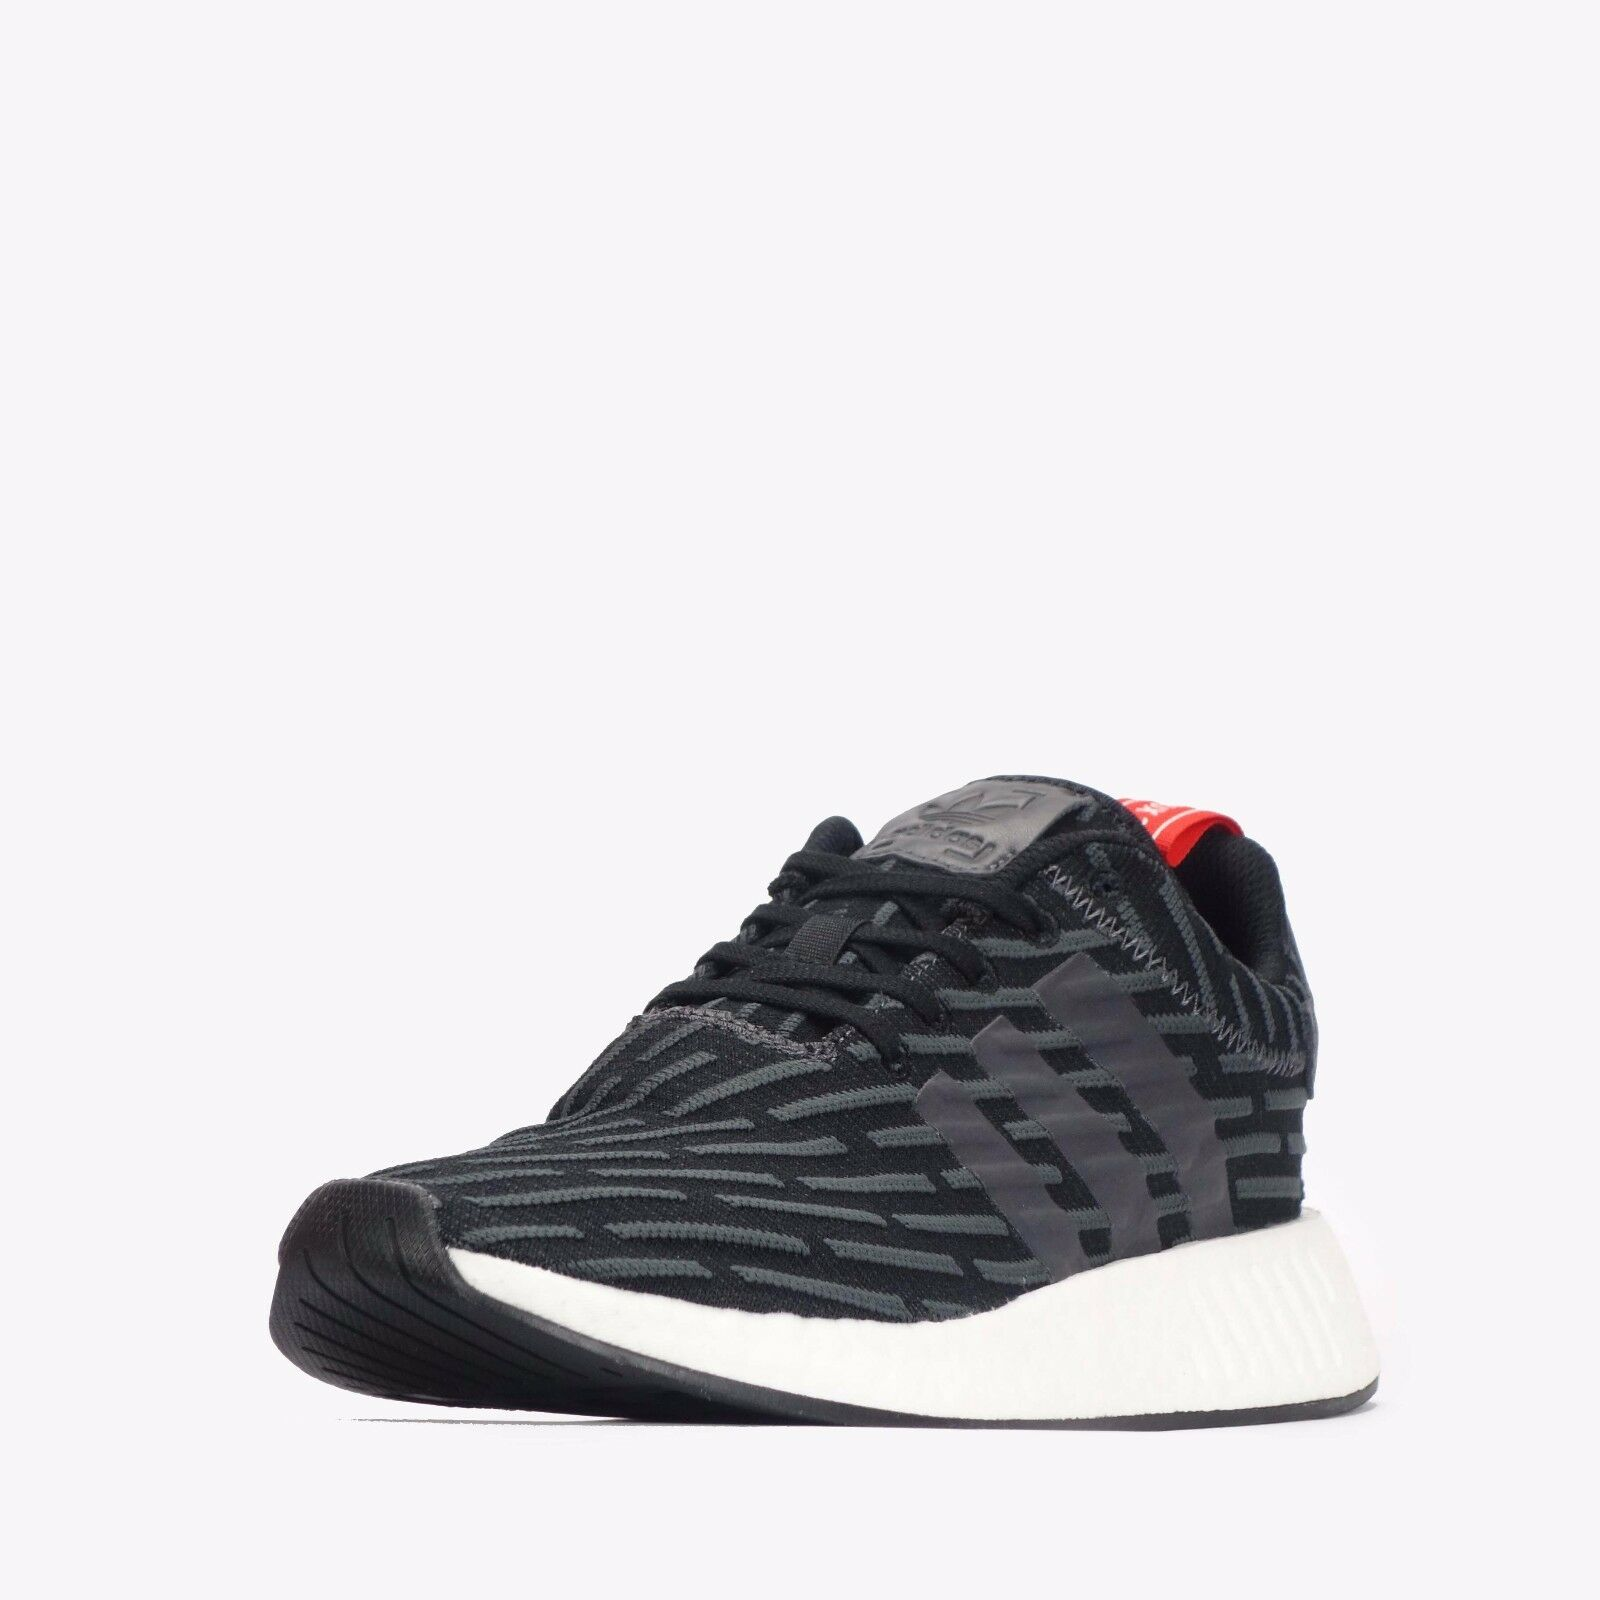 adidas NMD_R2 Men's Shoes Solid Grey-White RRP £99.99